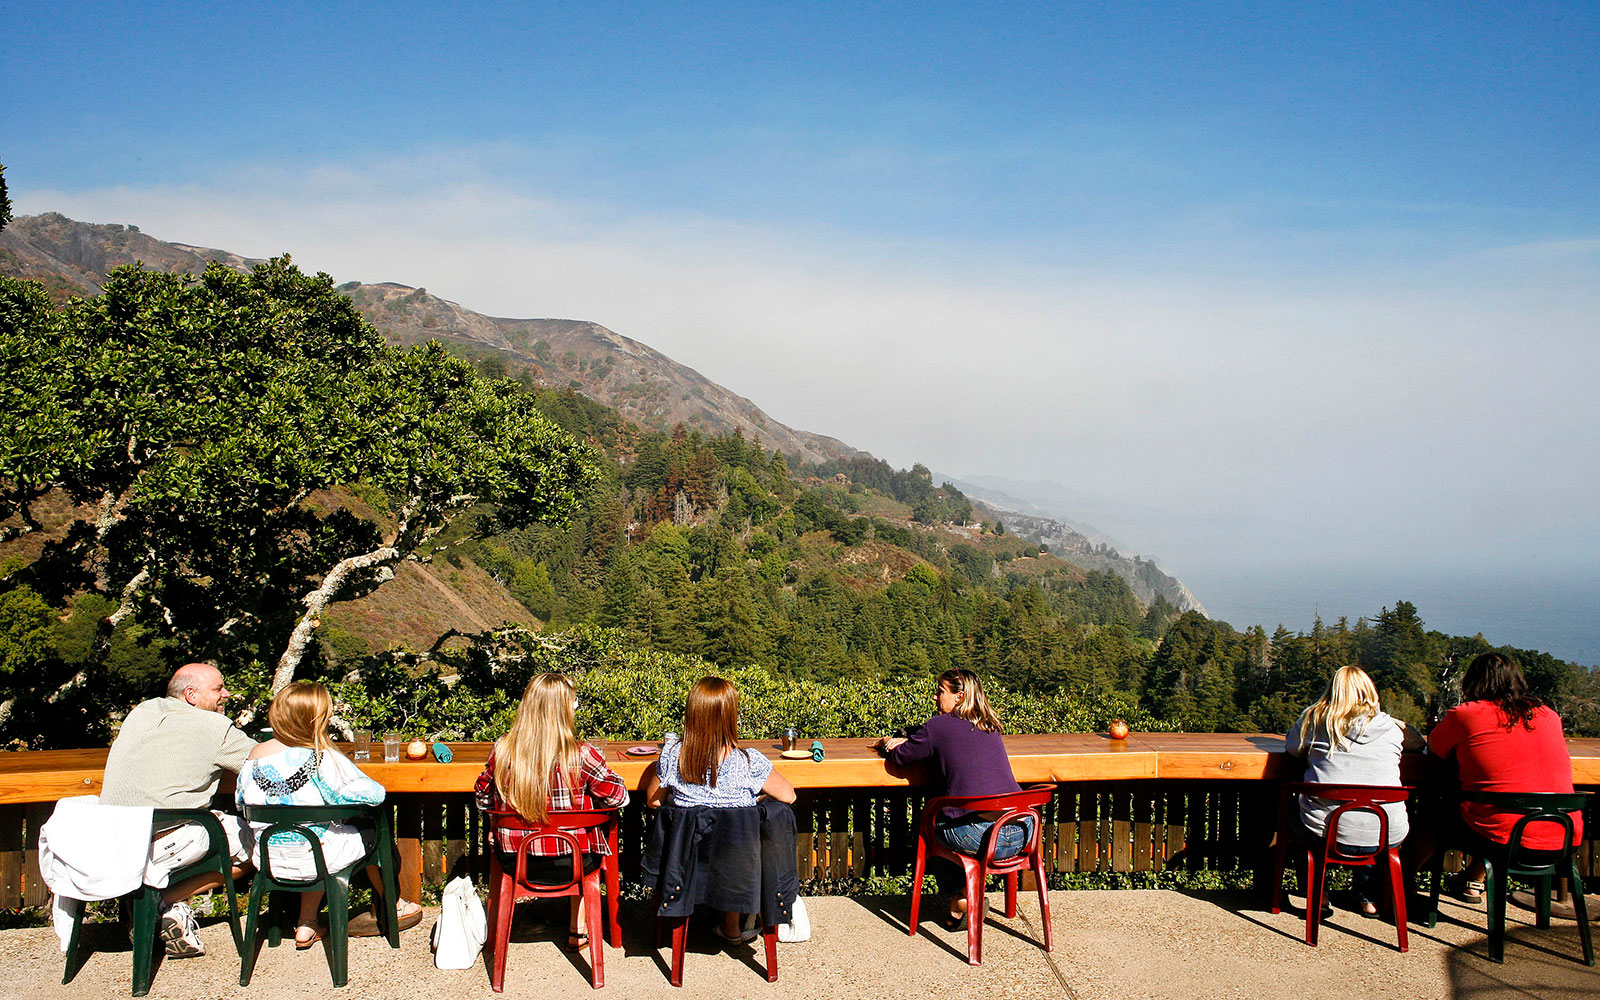 12:30 p.m.: Lunch at Nepenthe in Big Sur